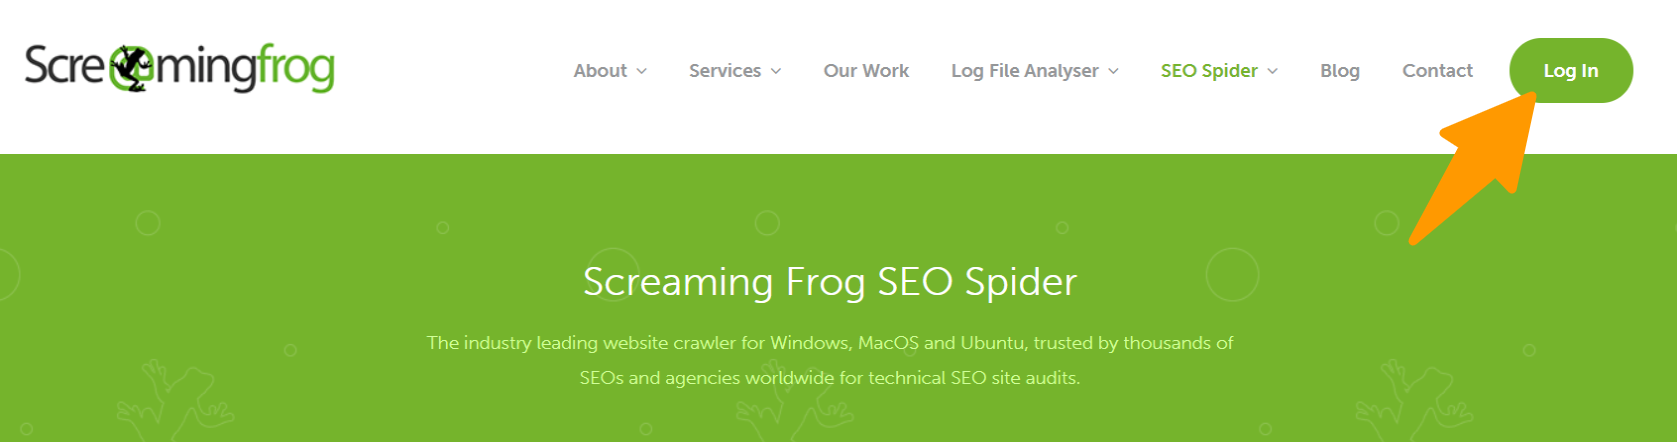 Screaming-Frog-SEO-Spider-Tool-